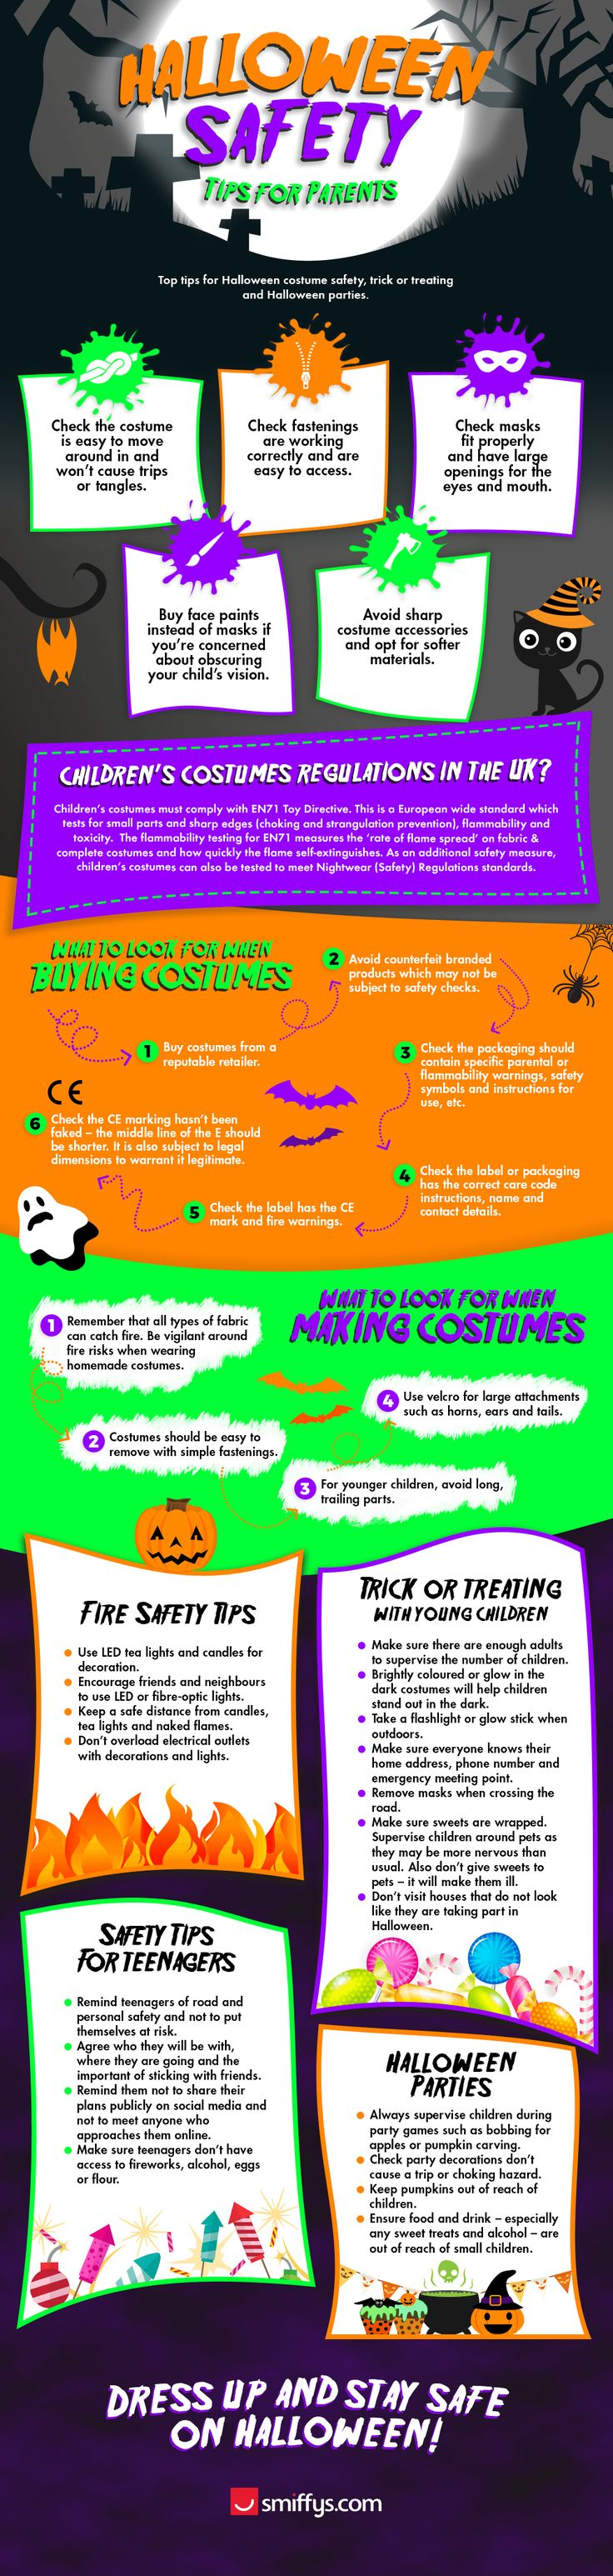 dress up and stay safe this halloween - Halloween Tips For Parents